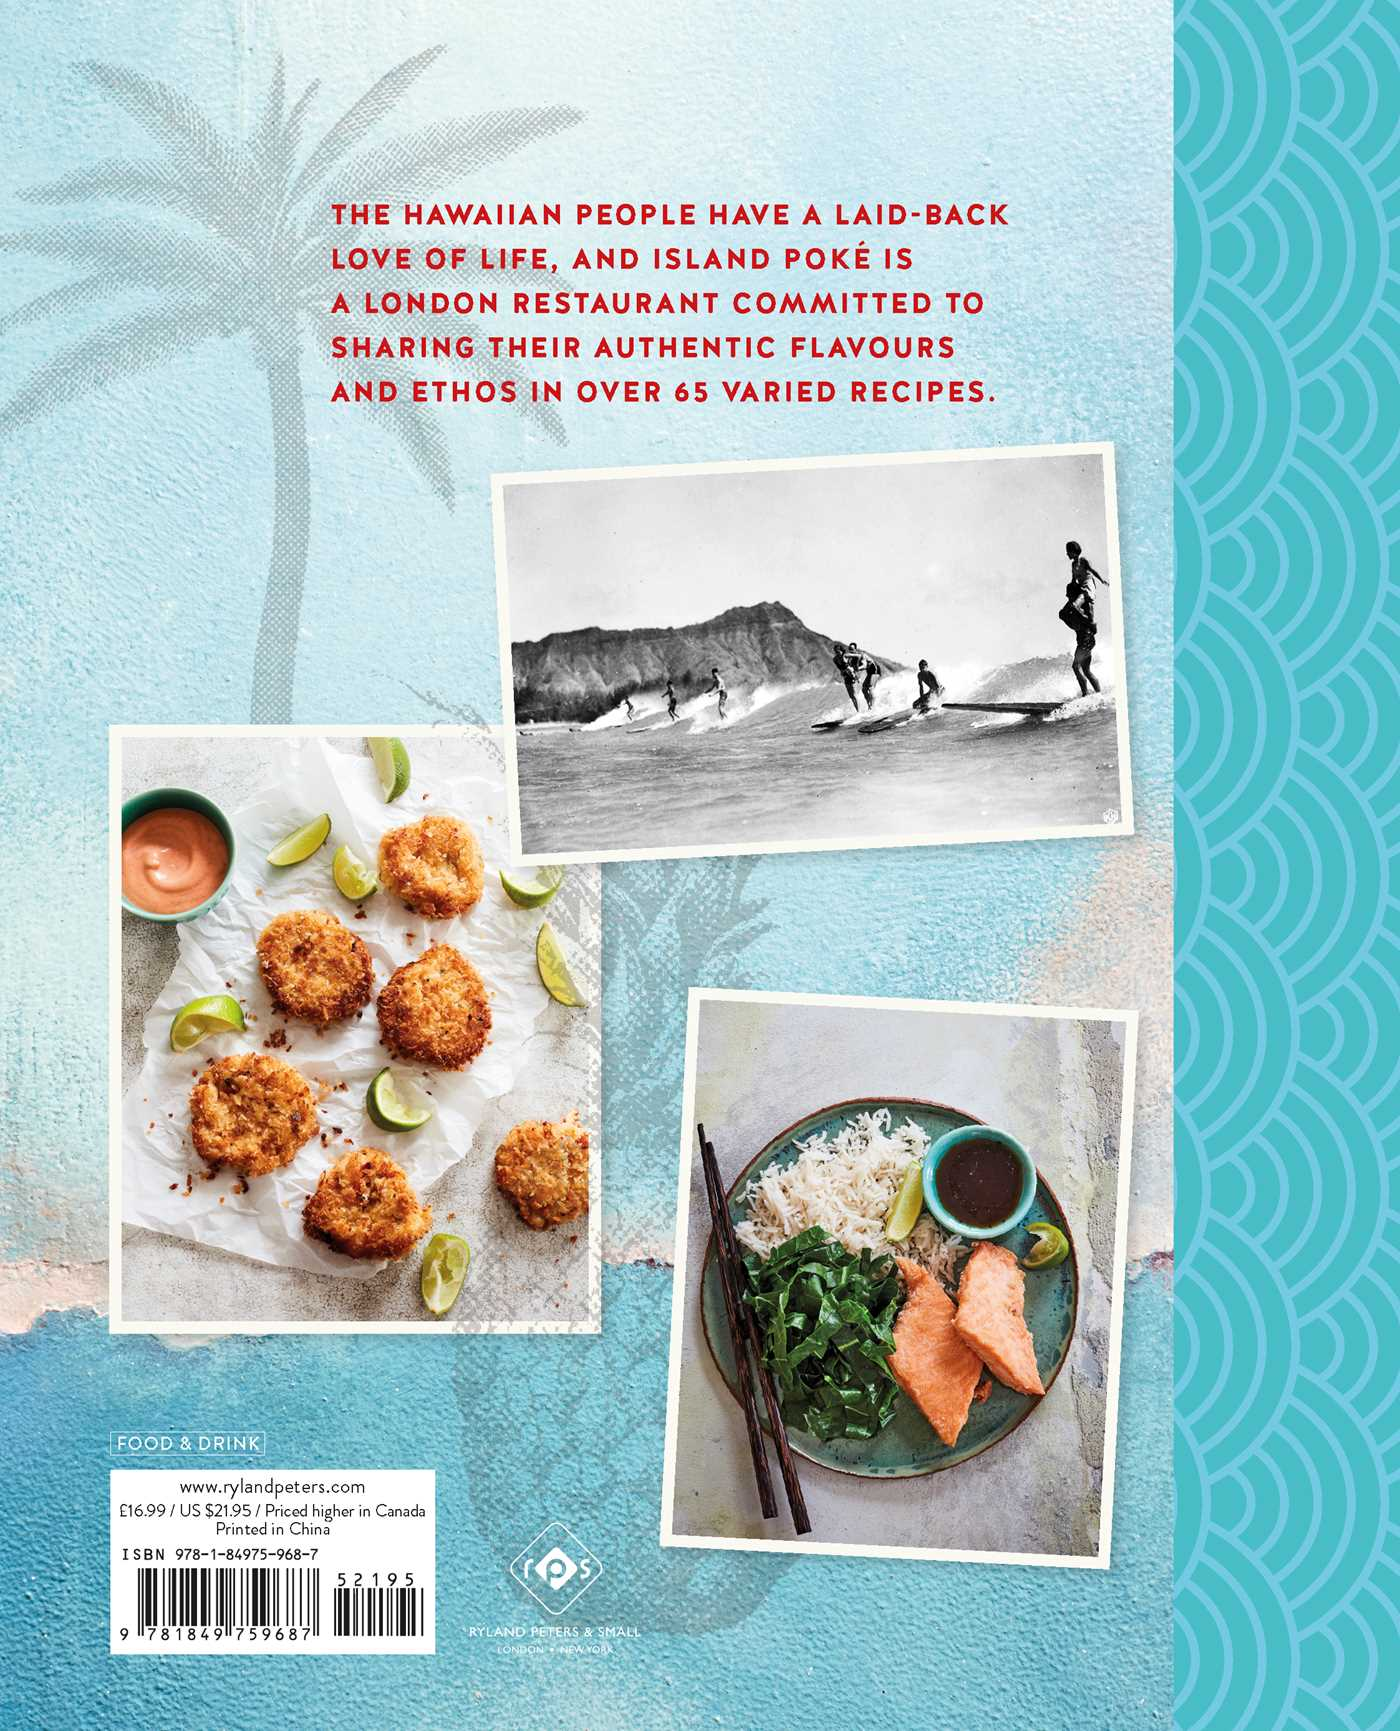 The island poke cookbook 9781849759687 hr back